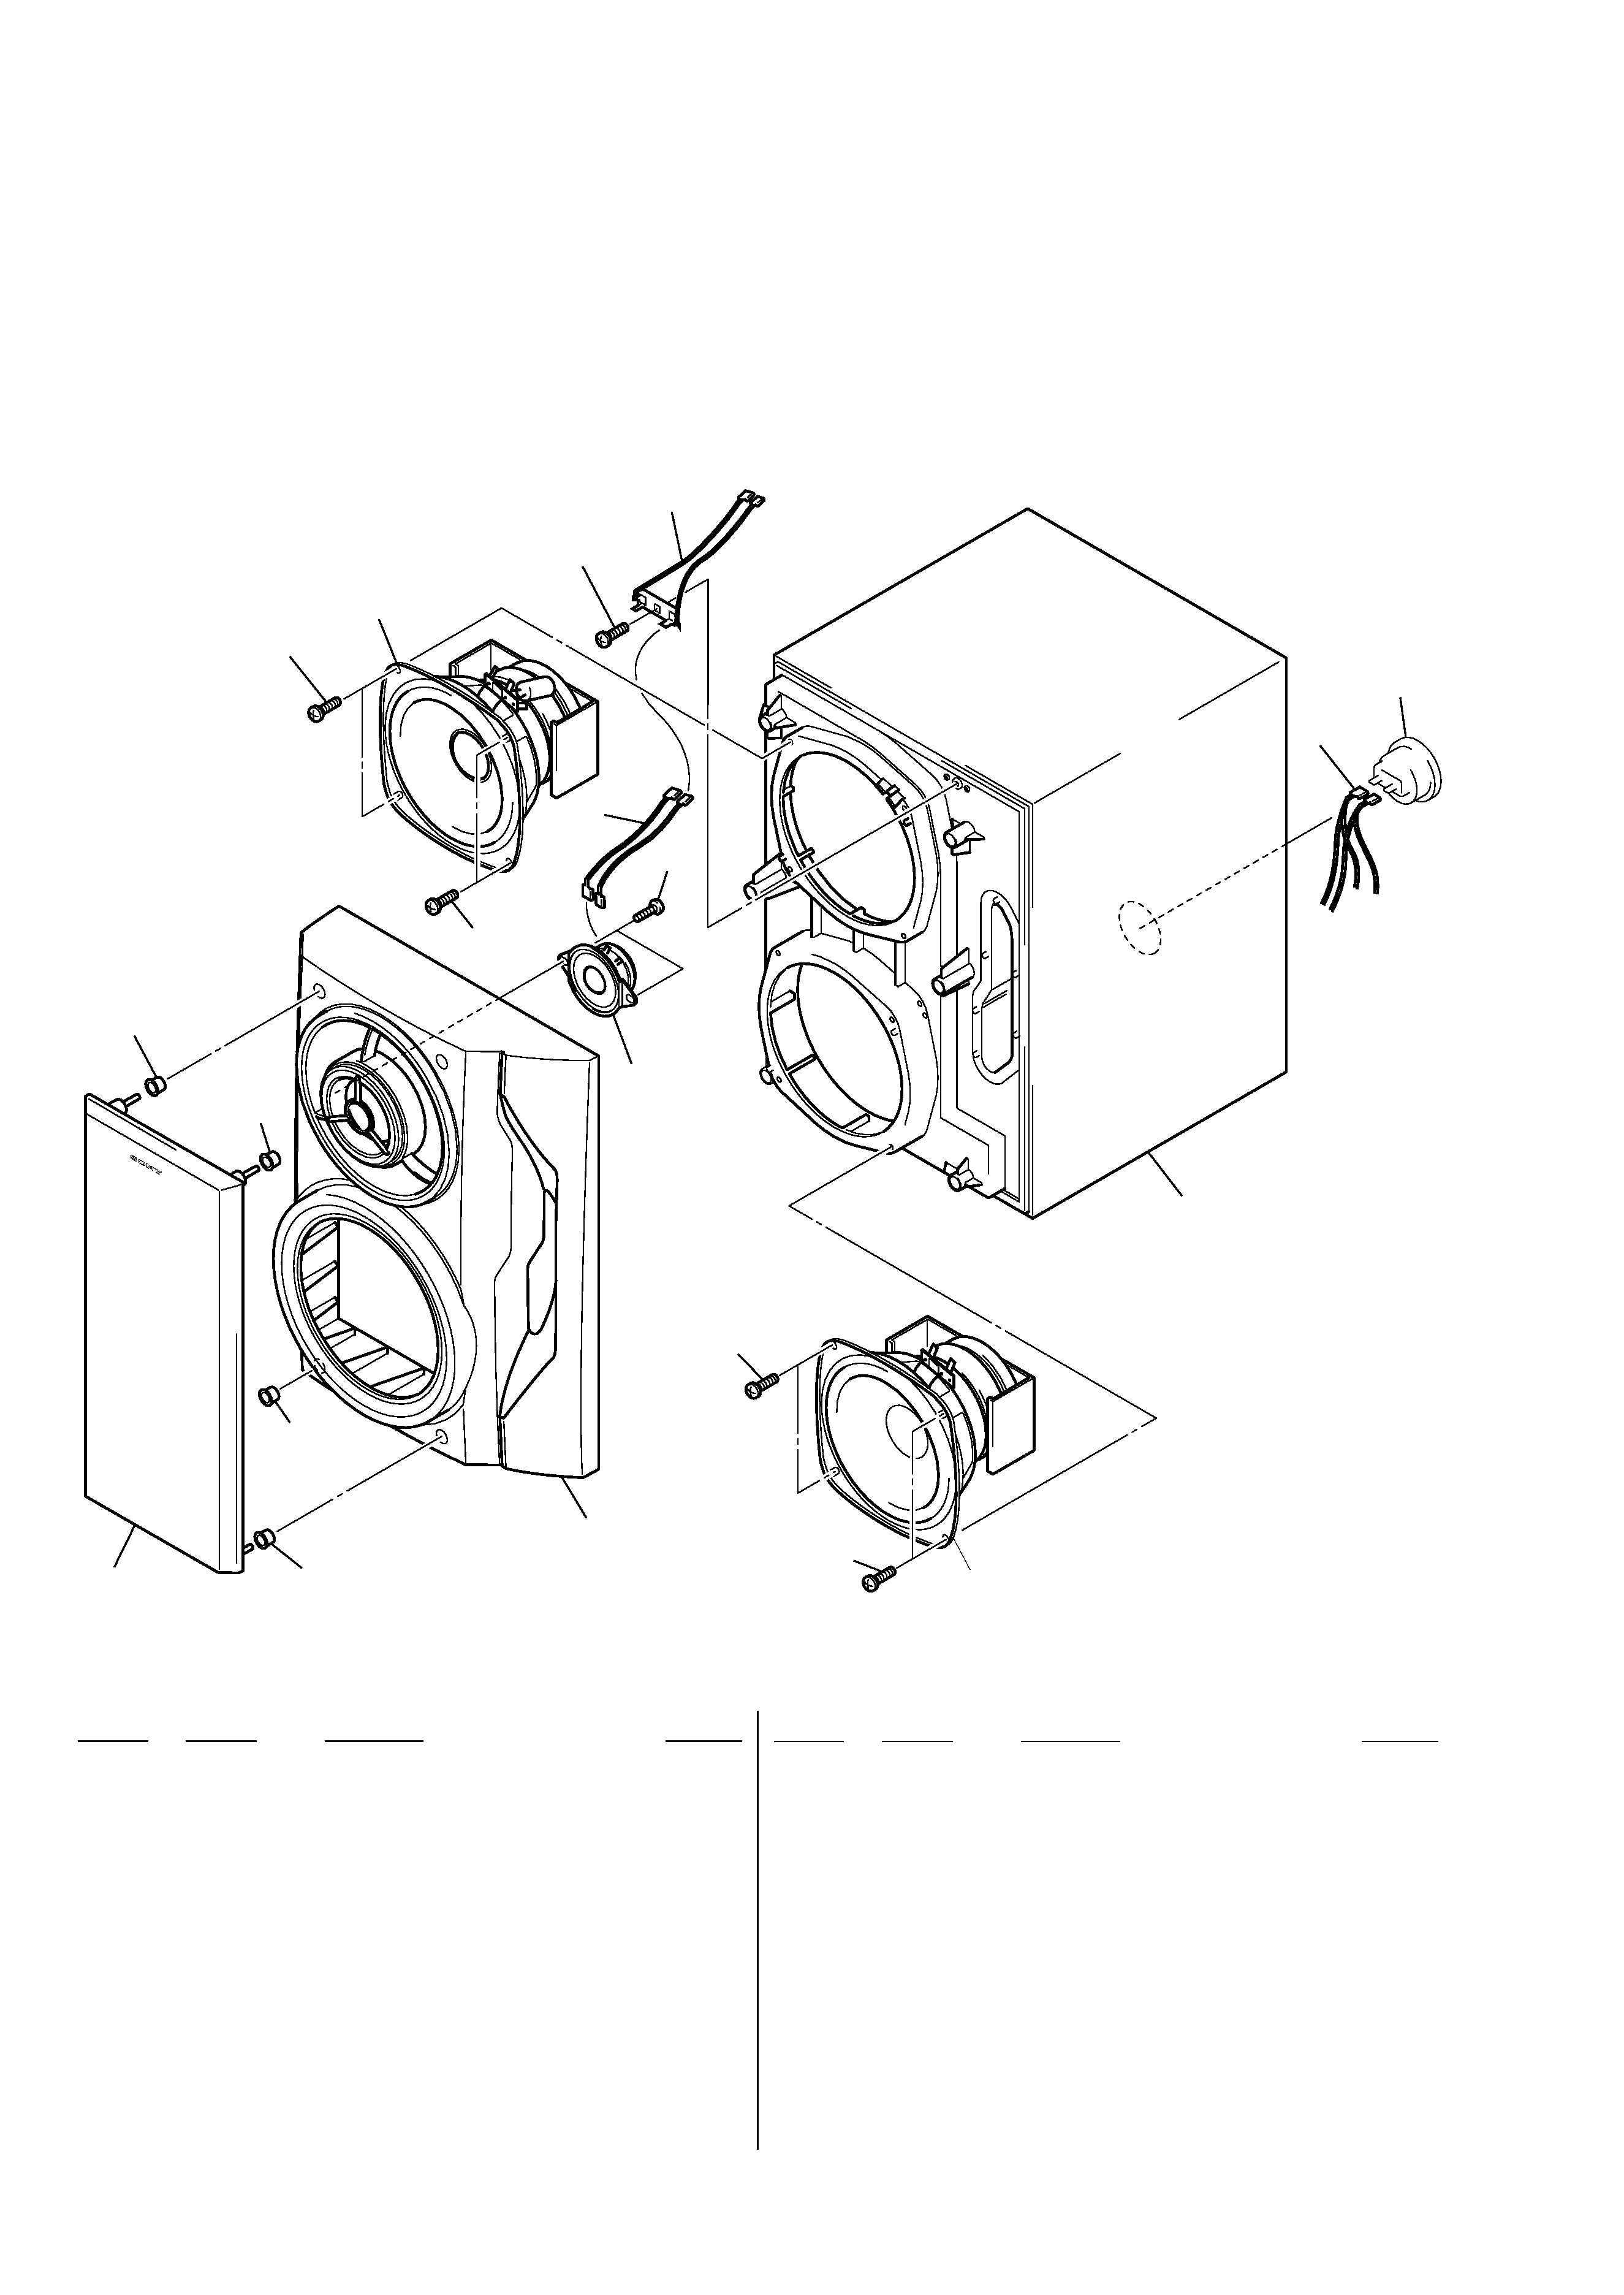 Simplicitylawntractorwiringdiagram Simplicity Rotary Mower Parts